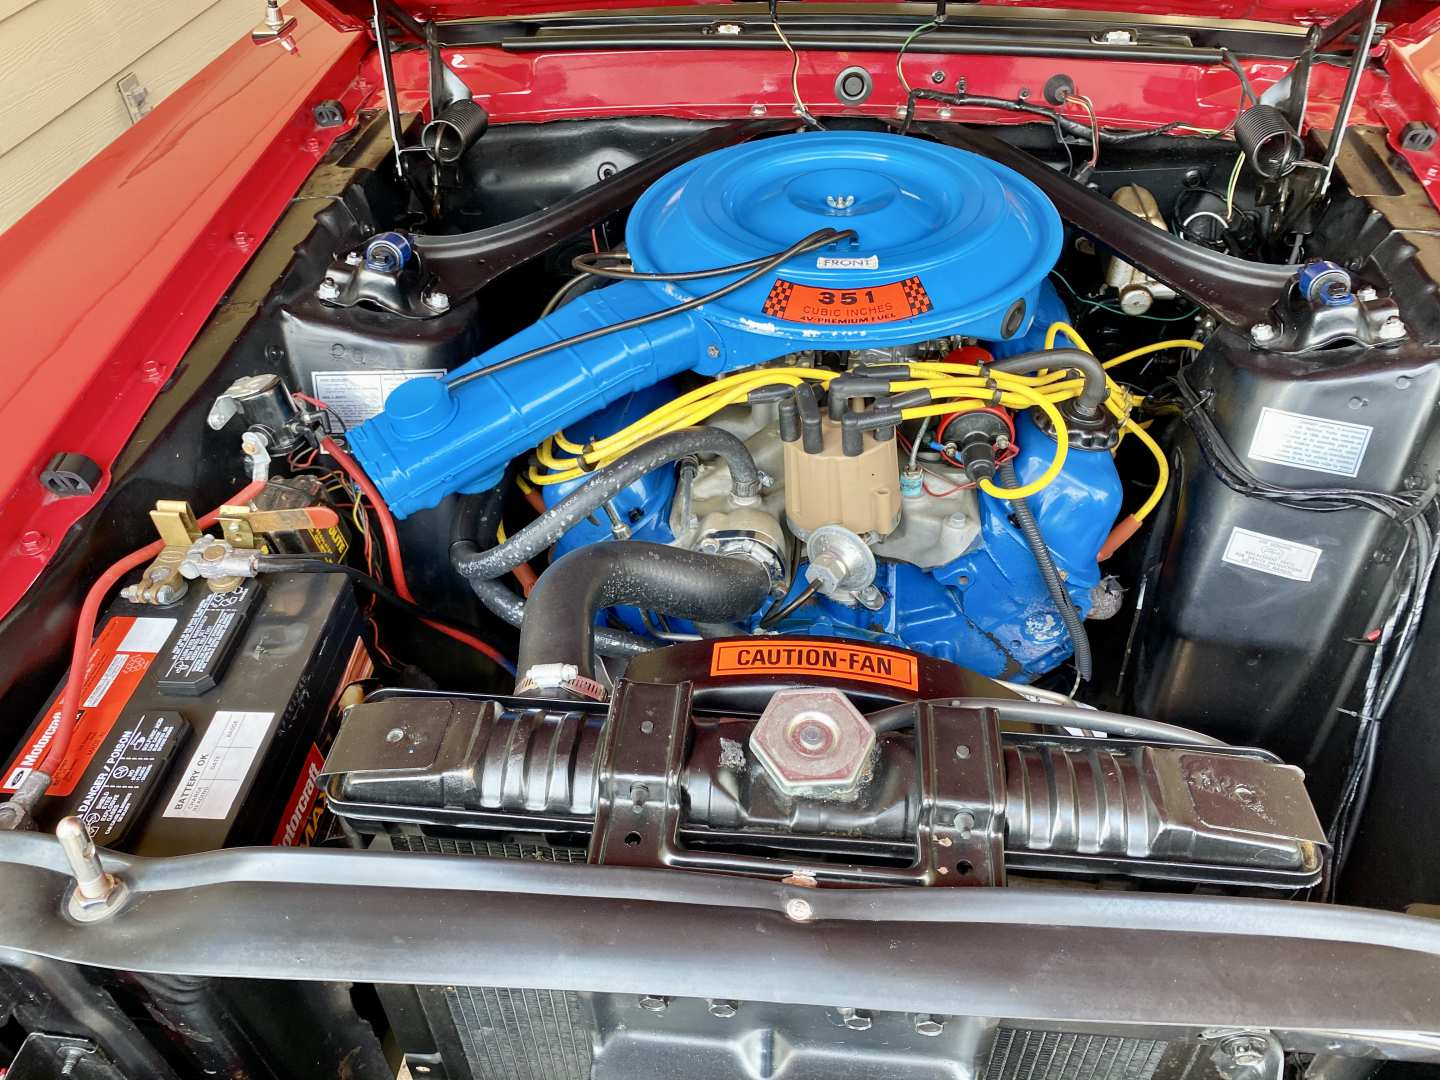 21st Image of a 1969 MUSTANG MACH I